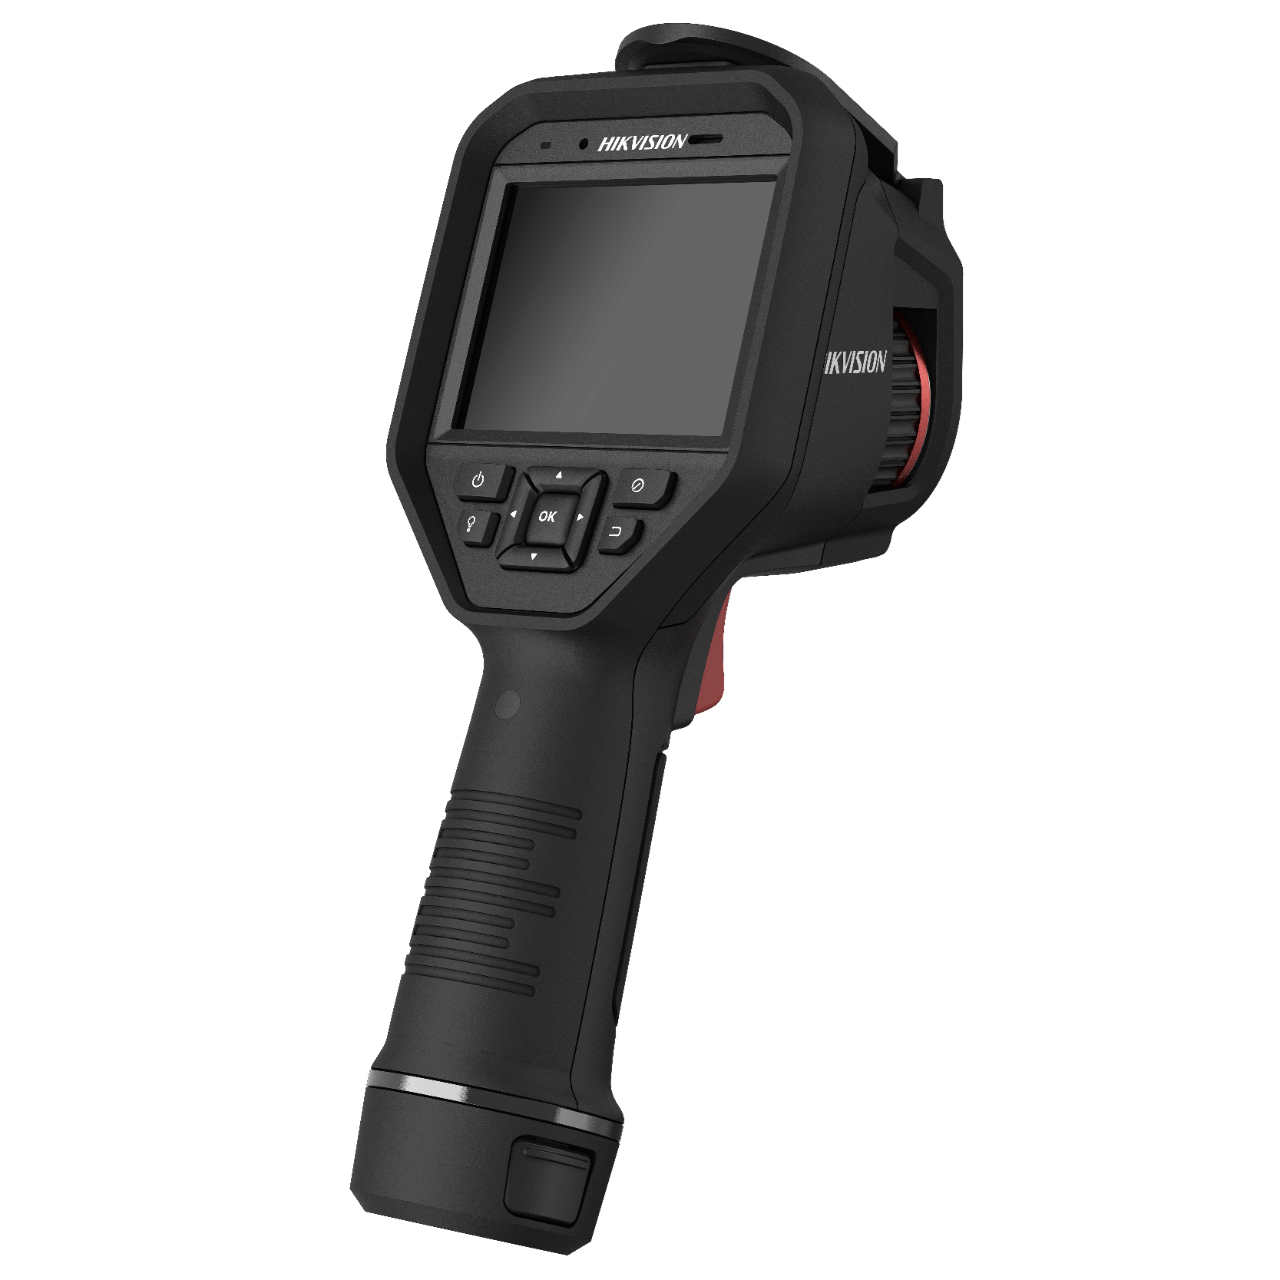 Εικόνα της DS-2TP21B-6AVF/W  Fever Screening Handheld Camera Hikvision